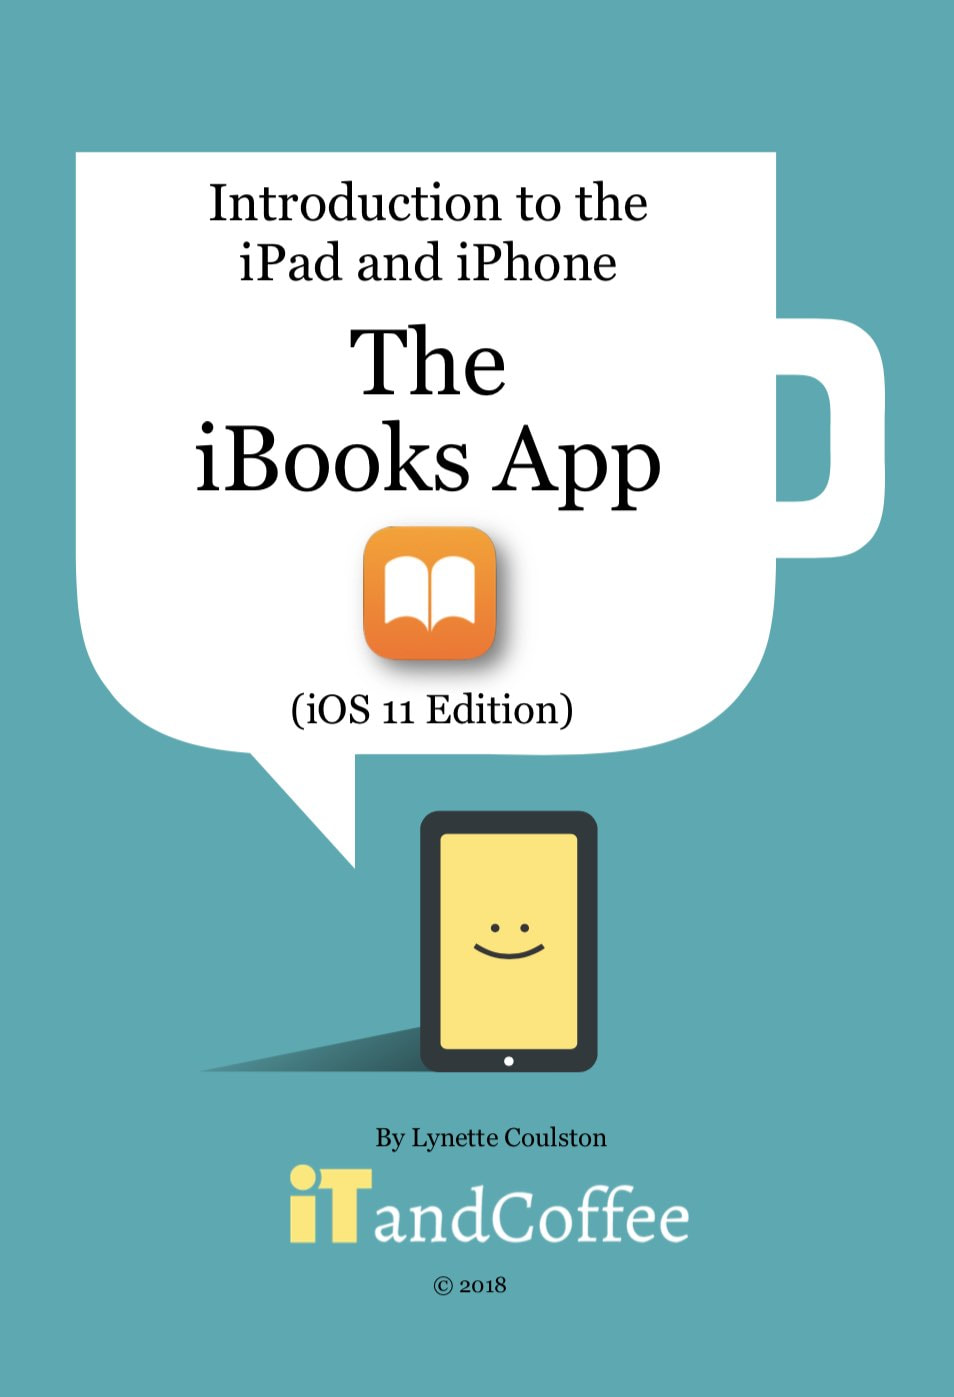 A guide to the iBooks app on the iPad and iPhone